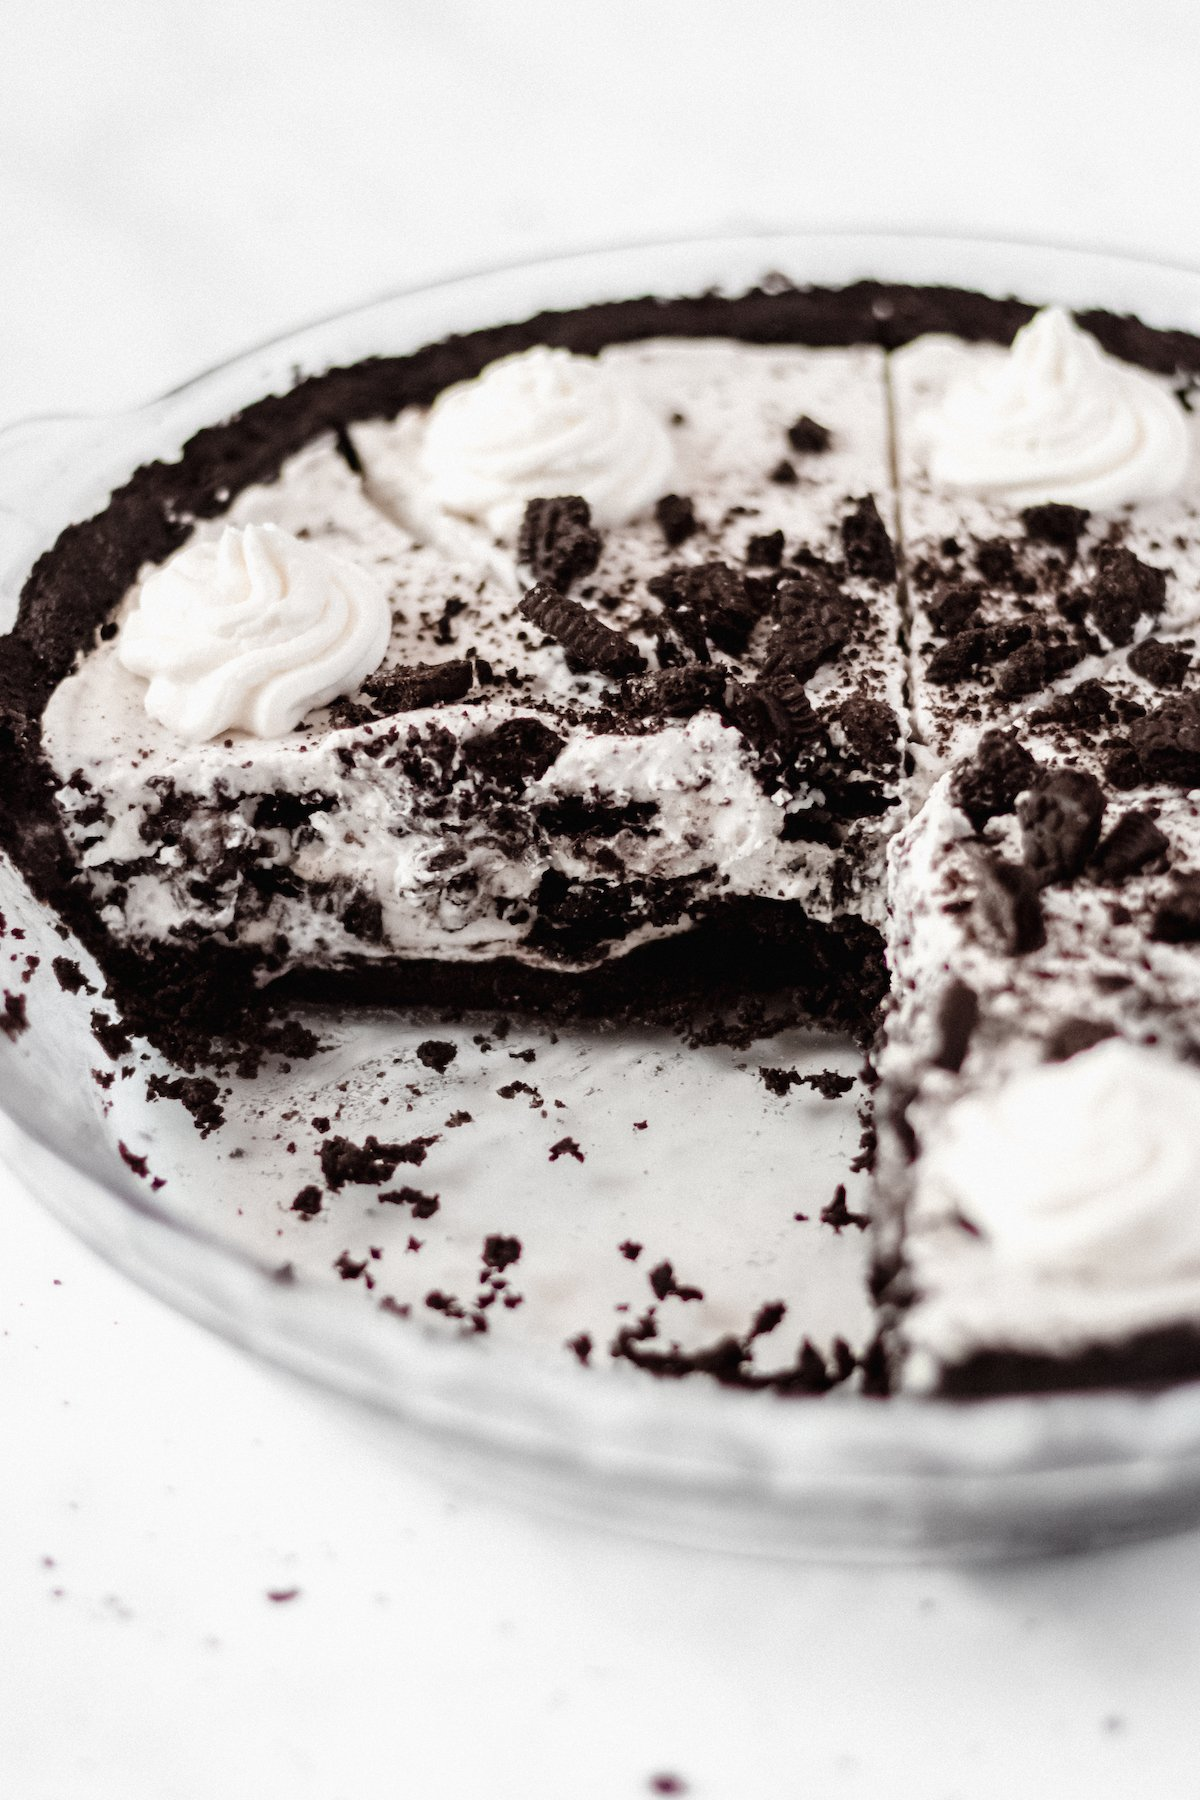 A cookies and cream pie in a glass pie dish on a white background. Two slices have been removed.